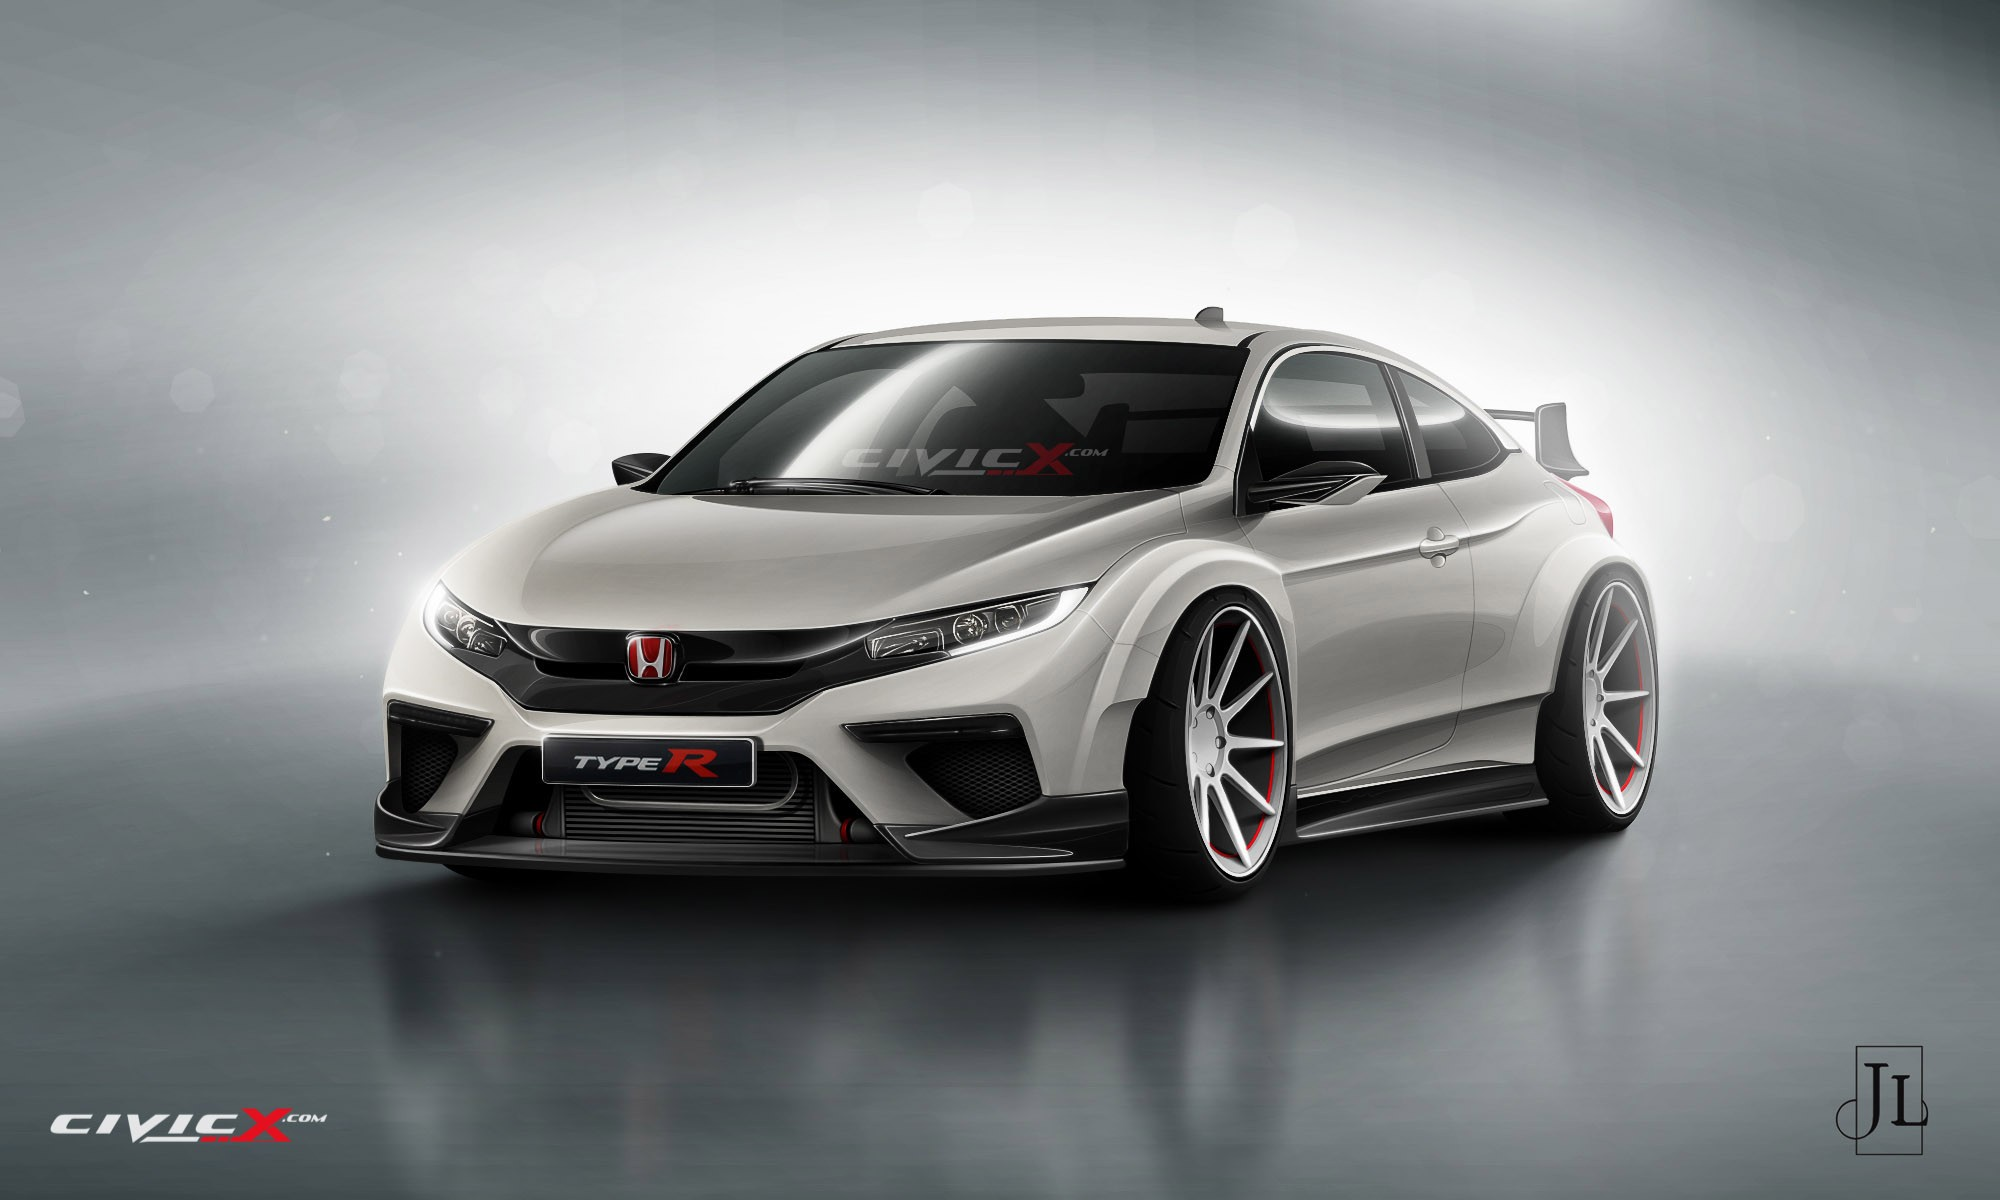 Novo Honda Civic Type R >> 2017 Honda Civic Coupe Rendered in Vanilla and Super-Hot Type R Flavors - autoevolution